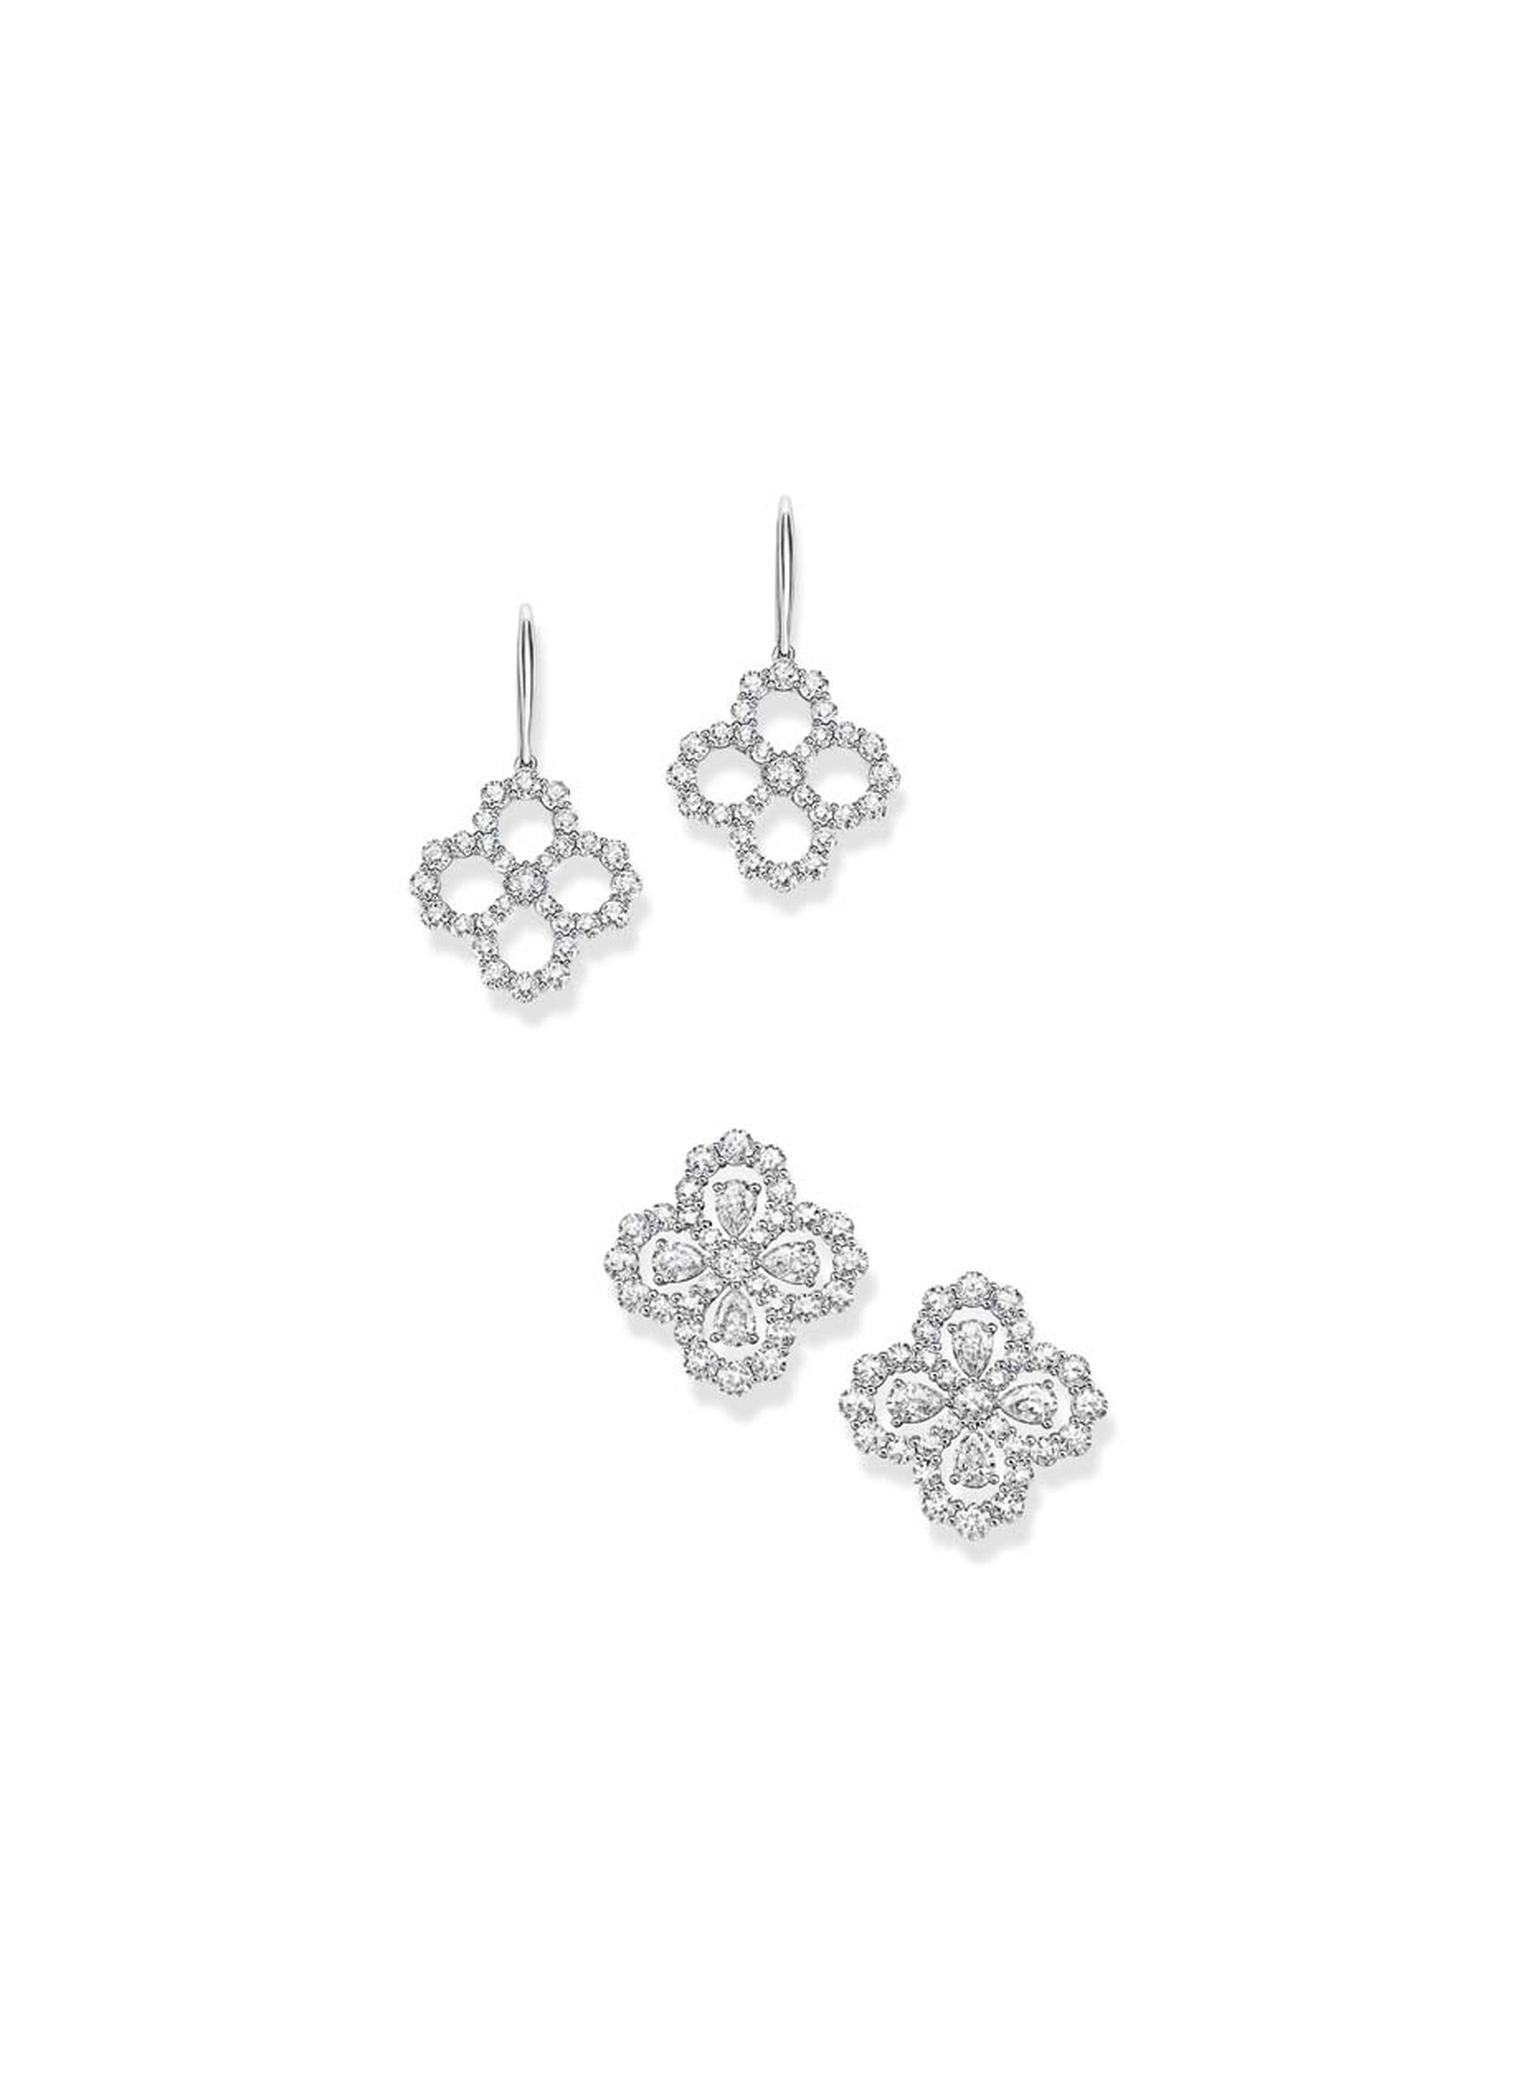 Harry Winston platinum Diamond Loop collection earrings.